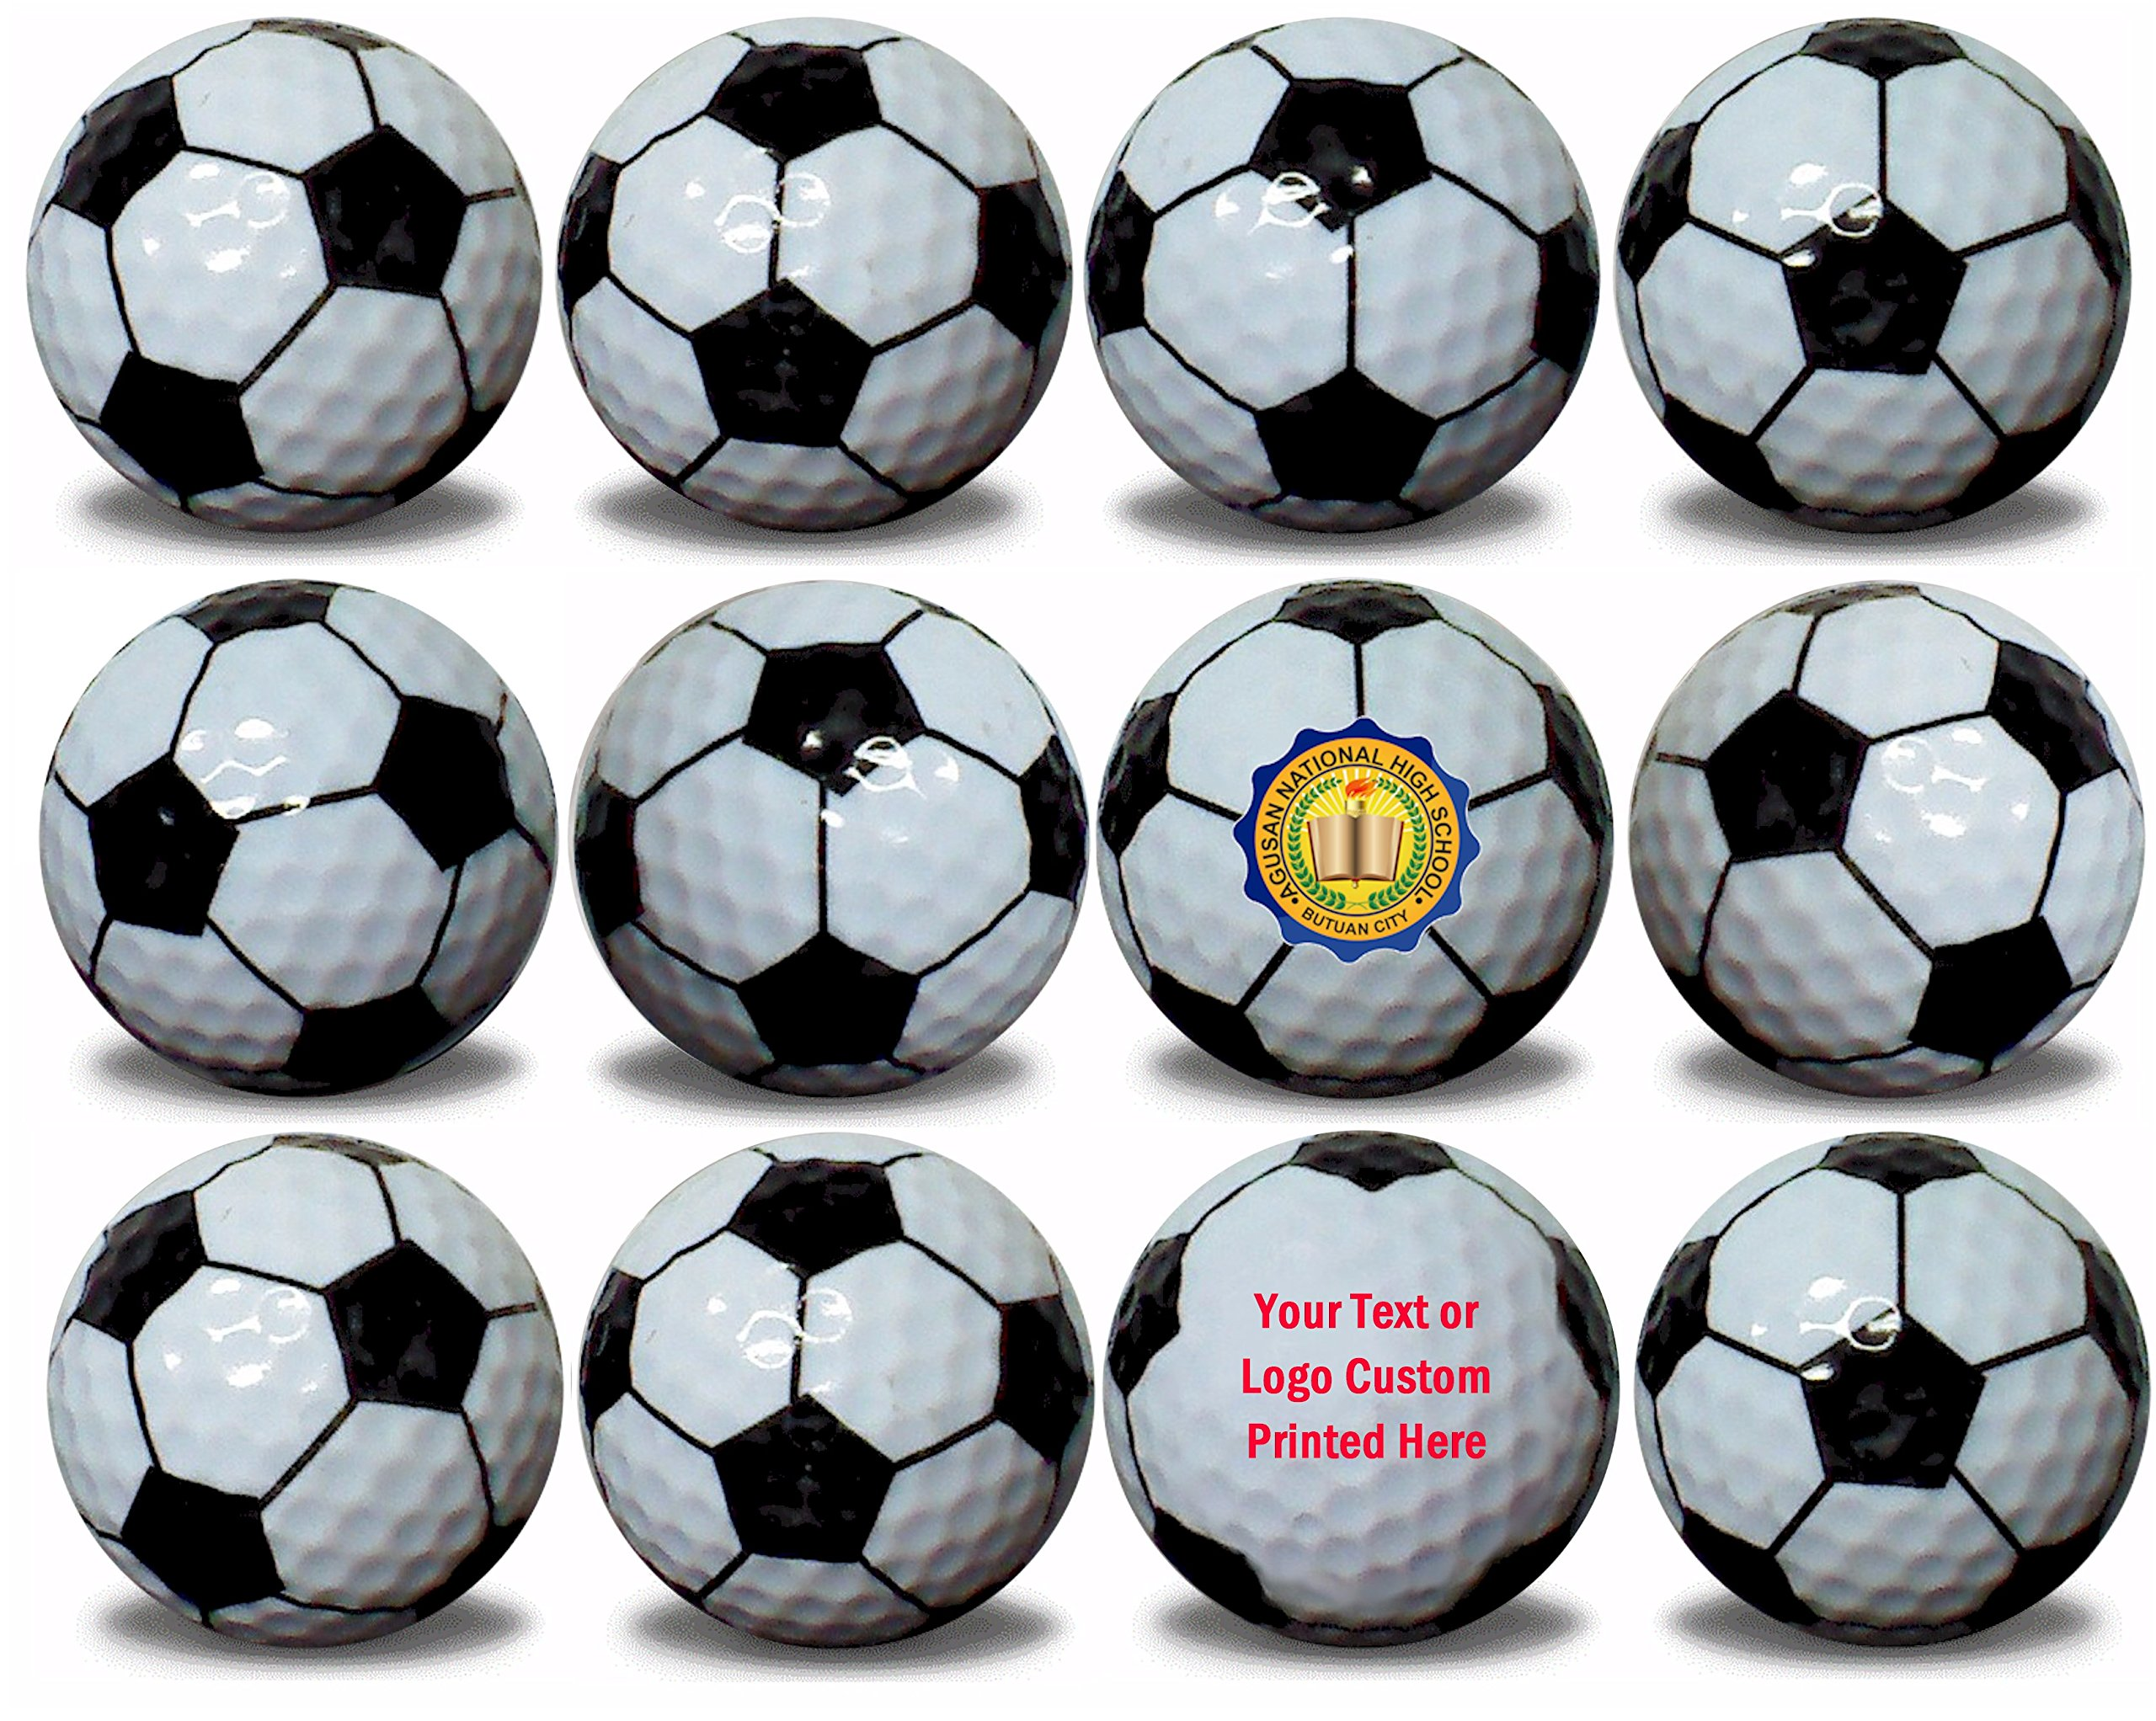 Custom Printed Soccer Ball Golf Balls 12 Pack Upload Your Logo or Text by GBM Golf